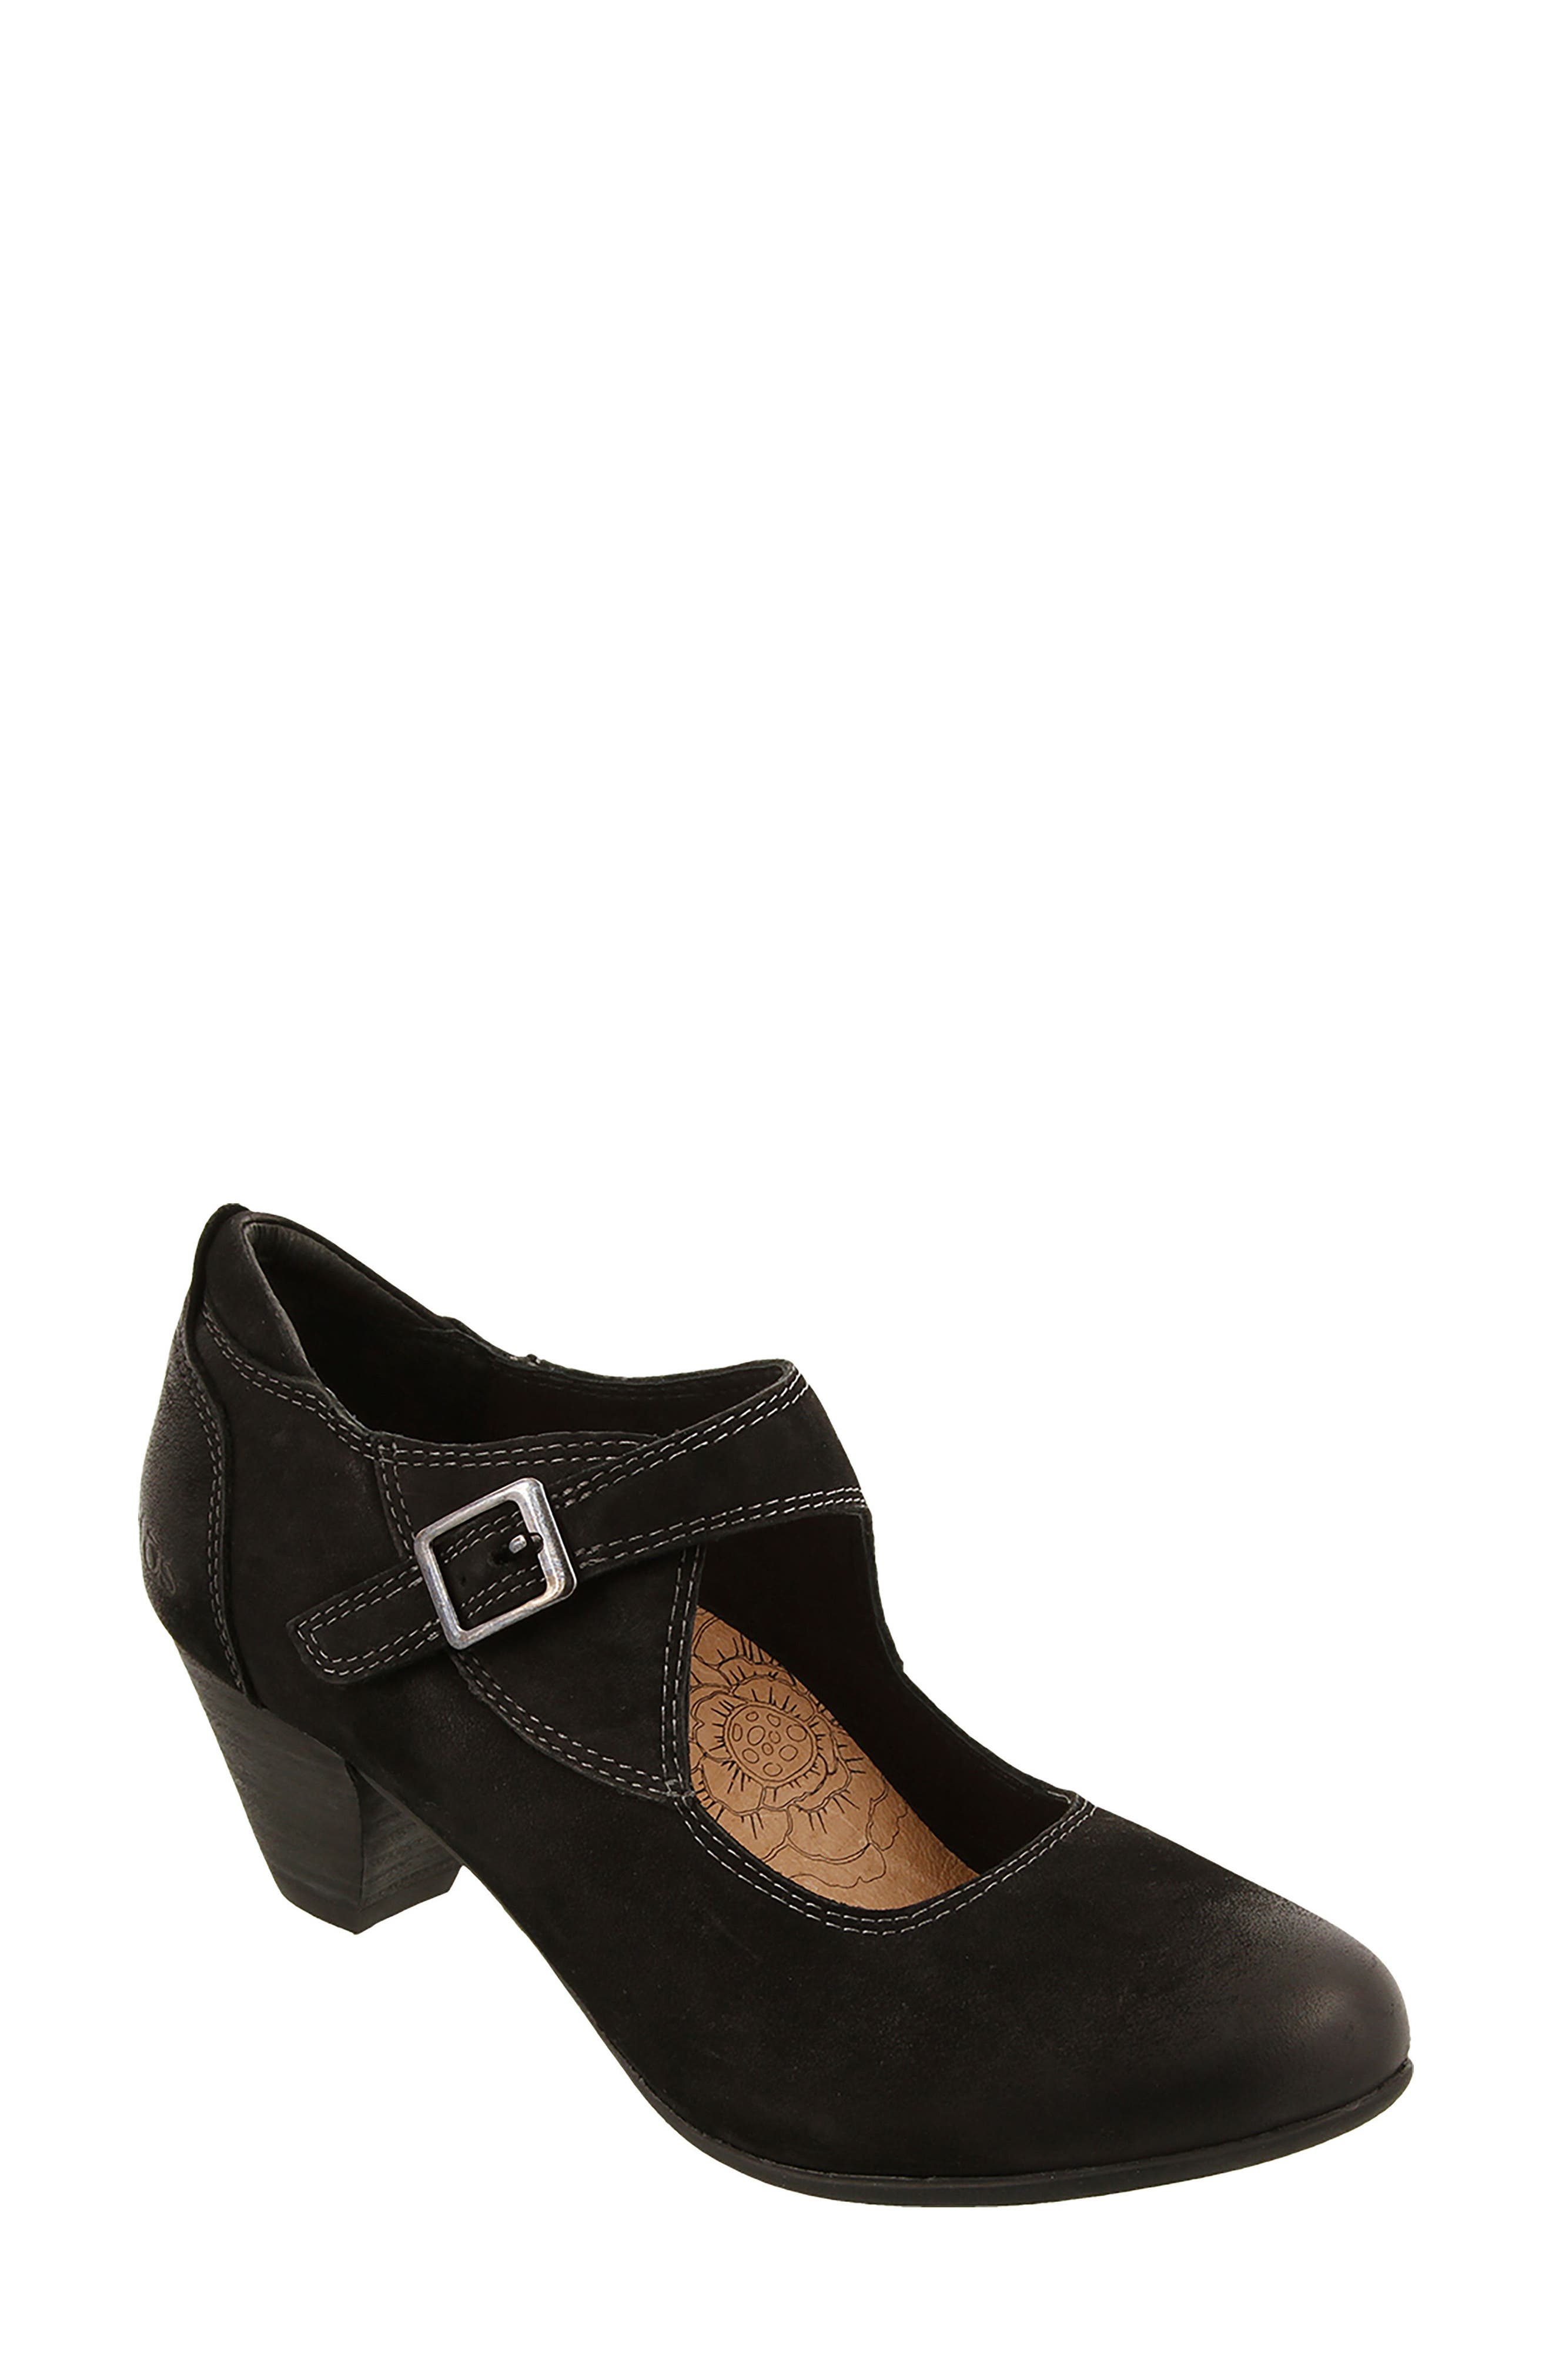 Studio Mary Jane Pump,                         Main,                         color, BLACK OILED LEATHER